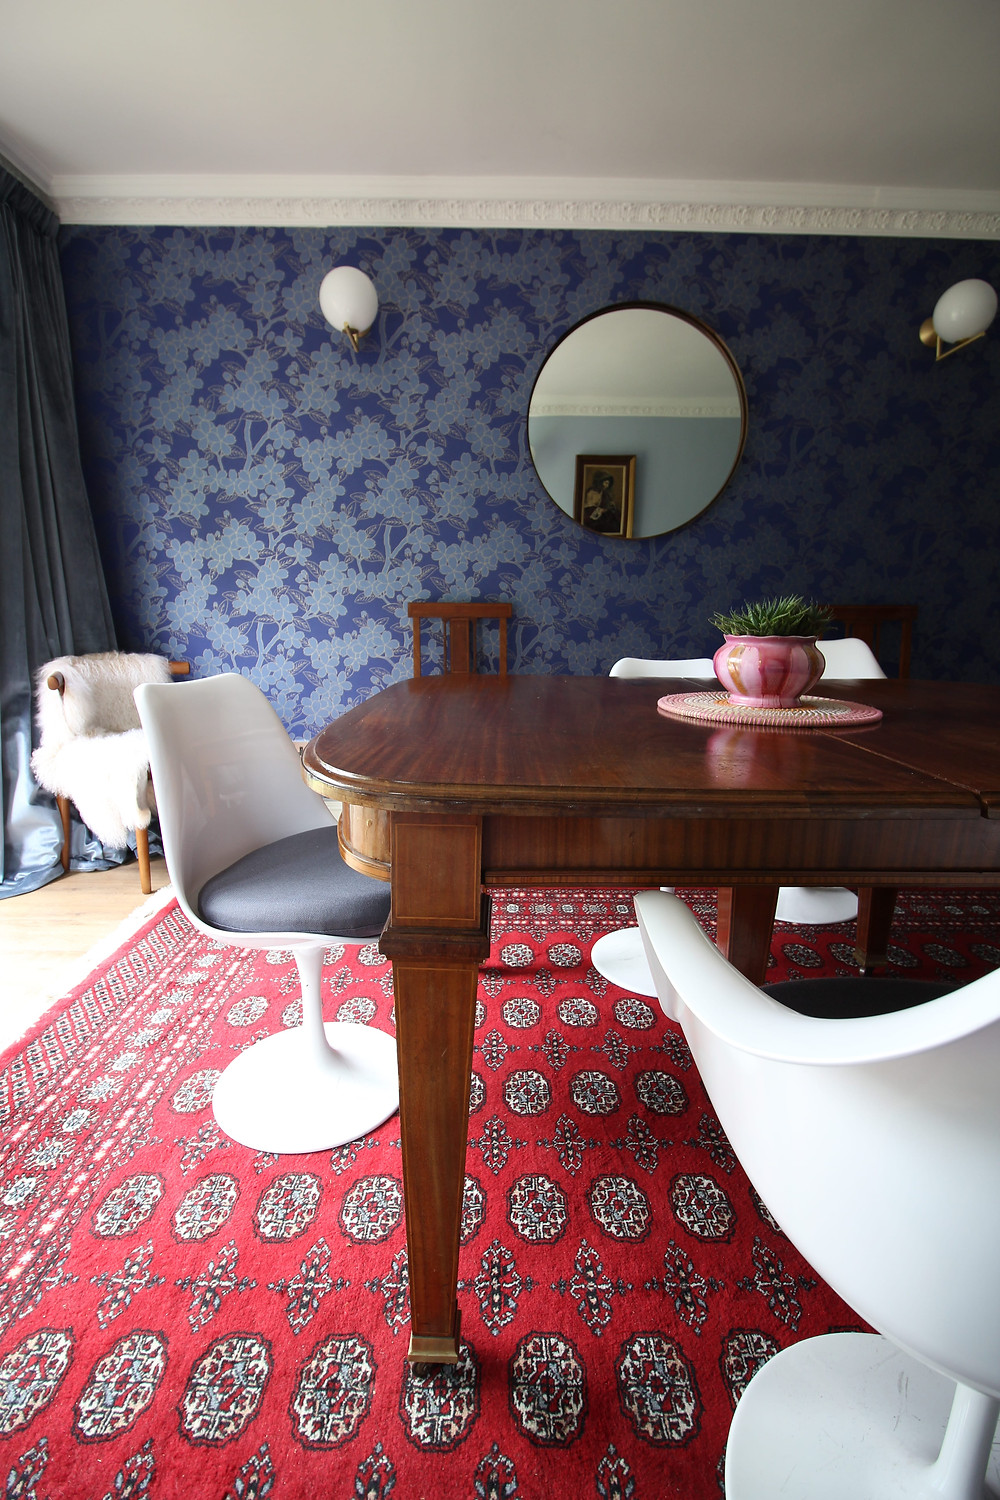 Dining room inspiration with Blue wallpaper Camelia from Little Green and red bukhara rug Tulip chairs and vintage table Flos lights and round mirror